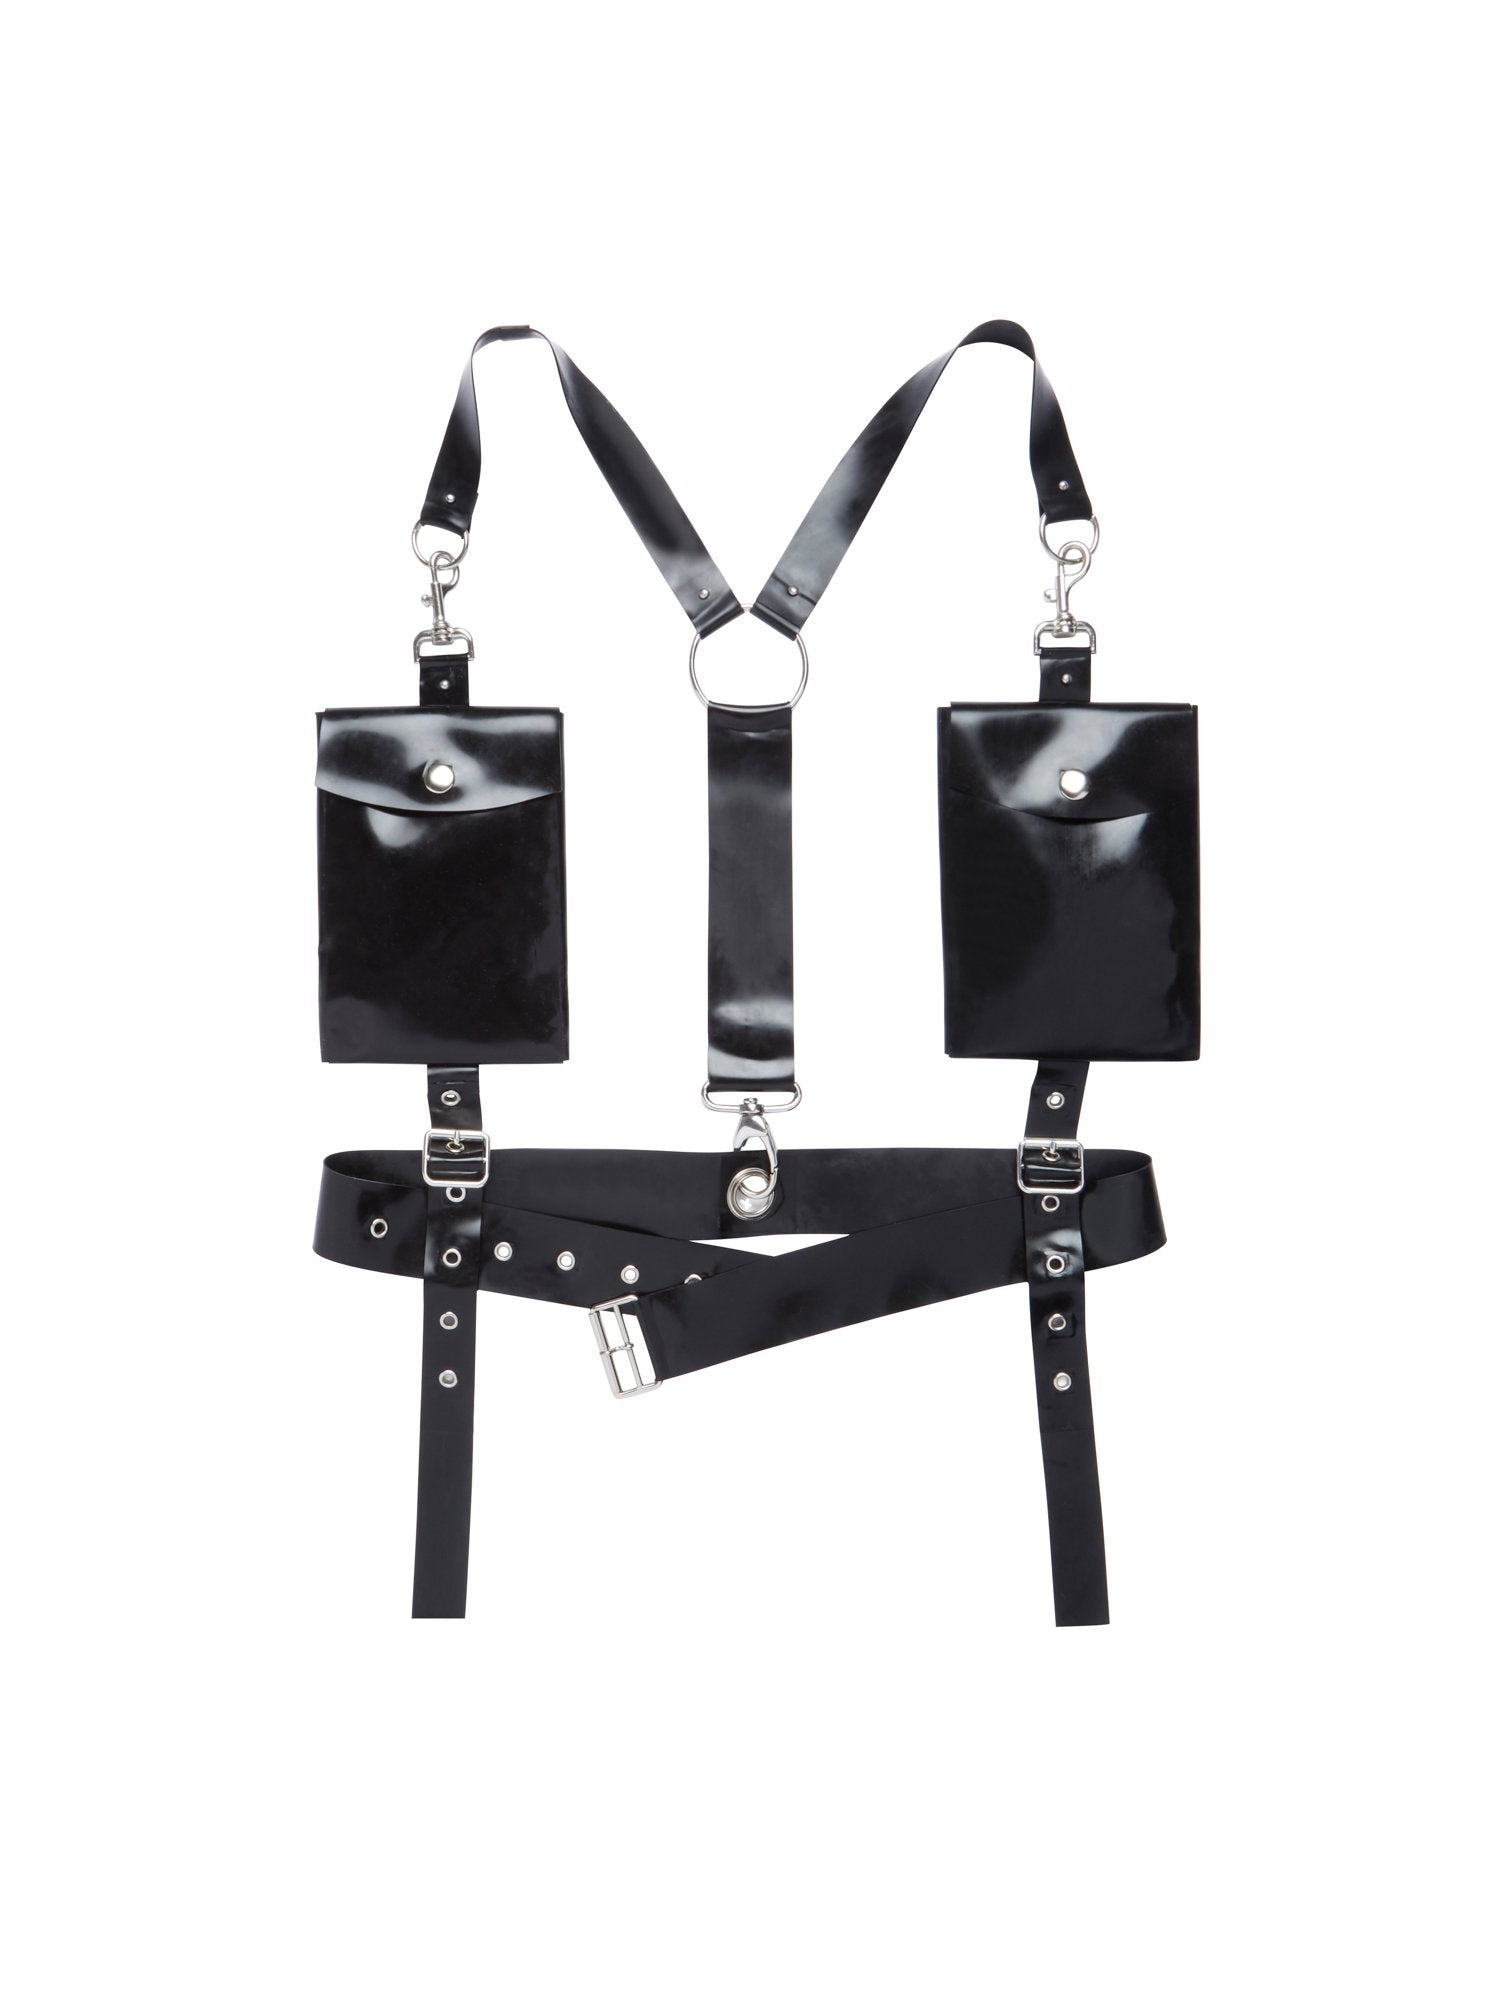 Studio Fclx 2 Bag Latex Harness